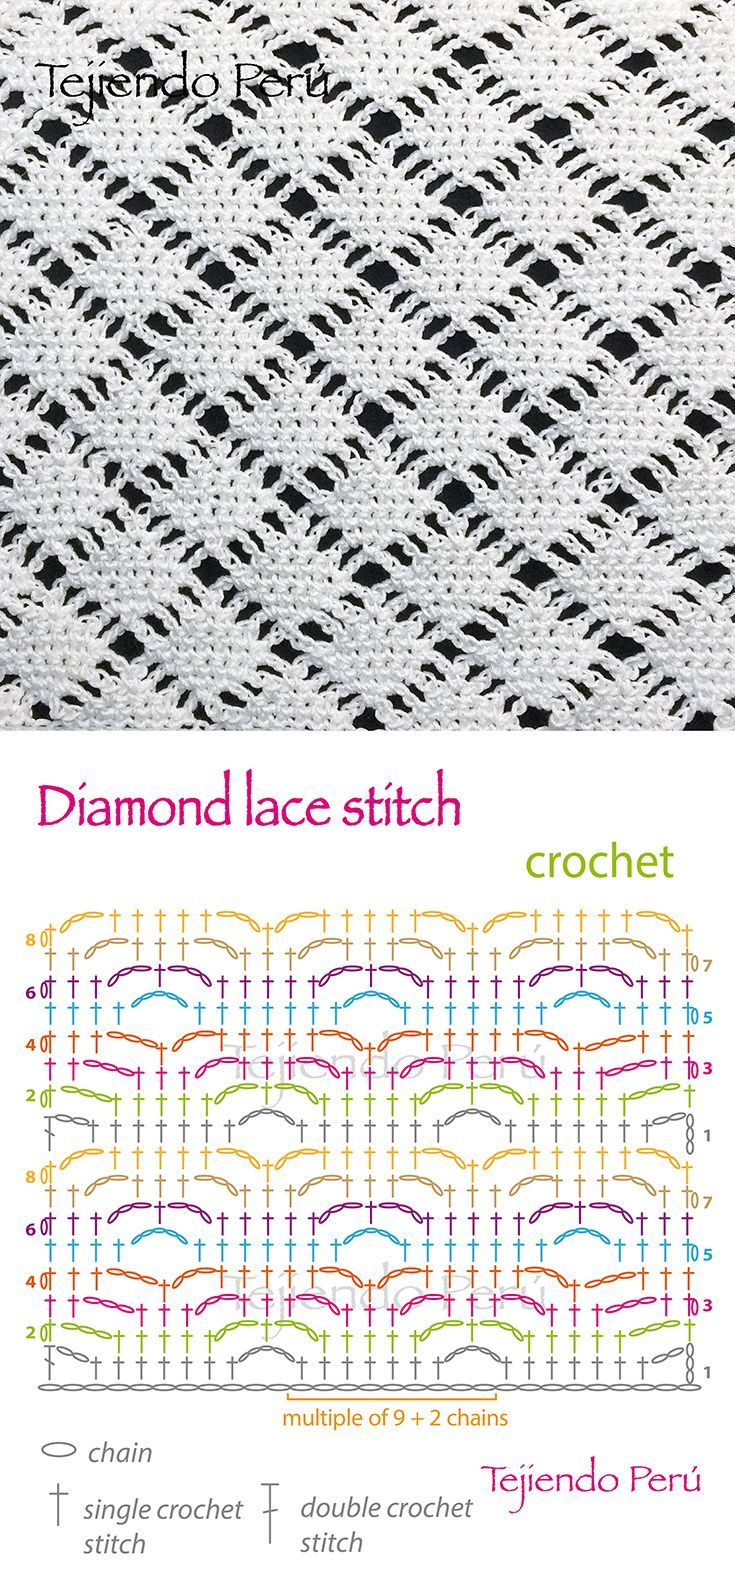 Crochet: diamond lace stitch diagram!: